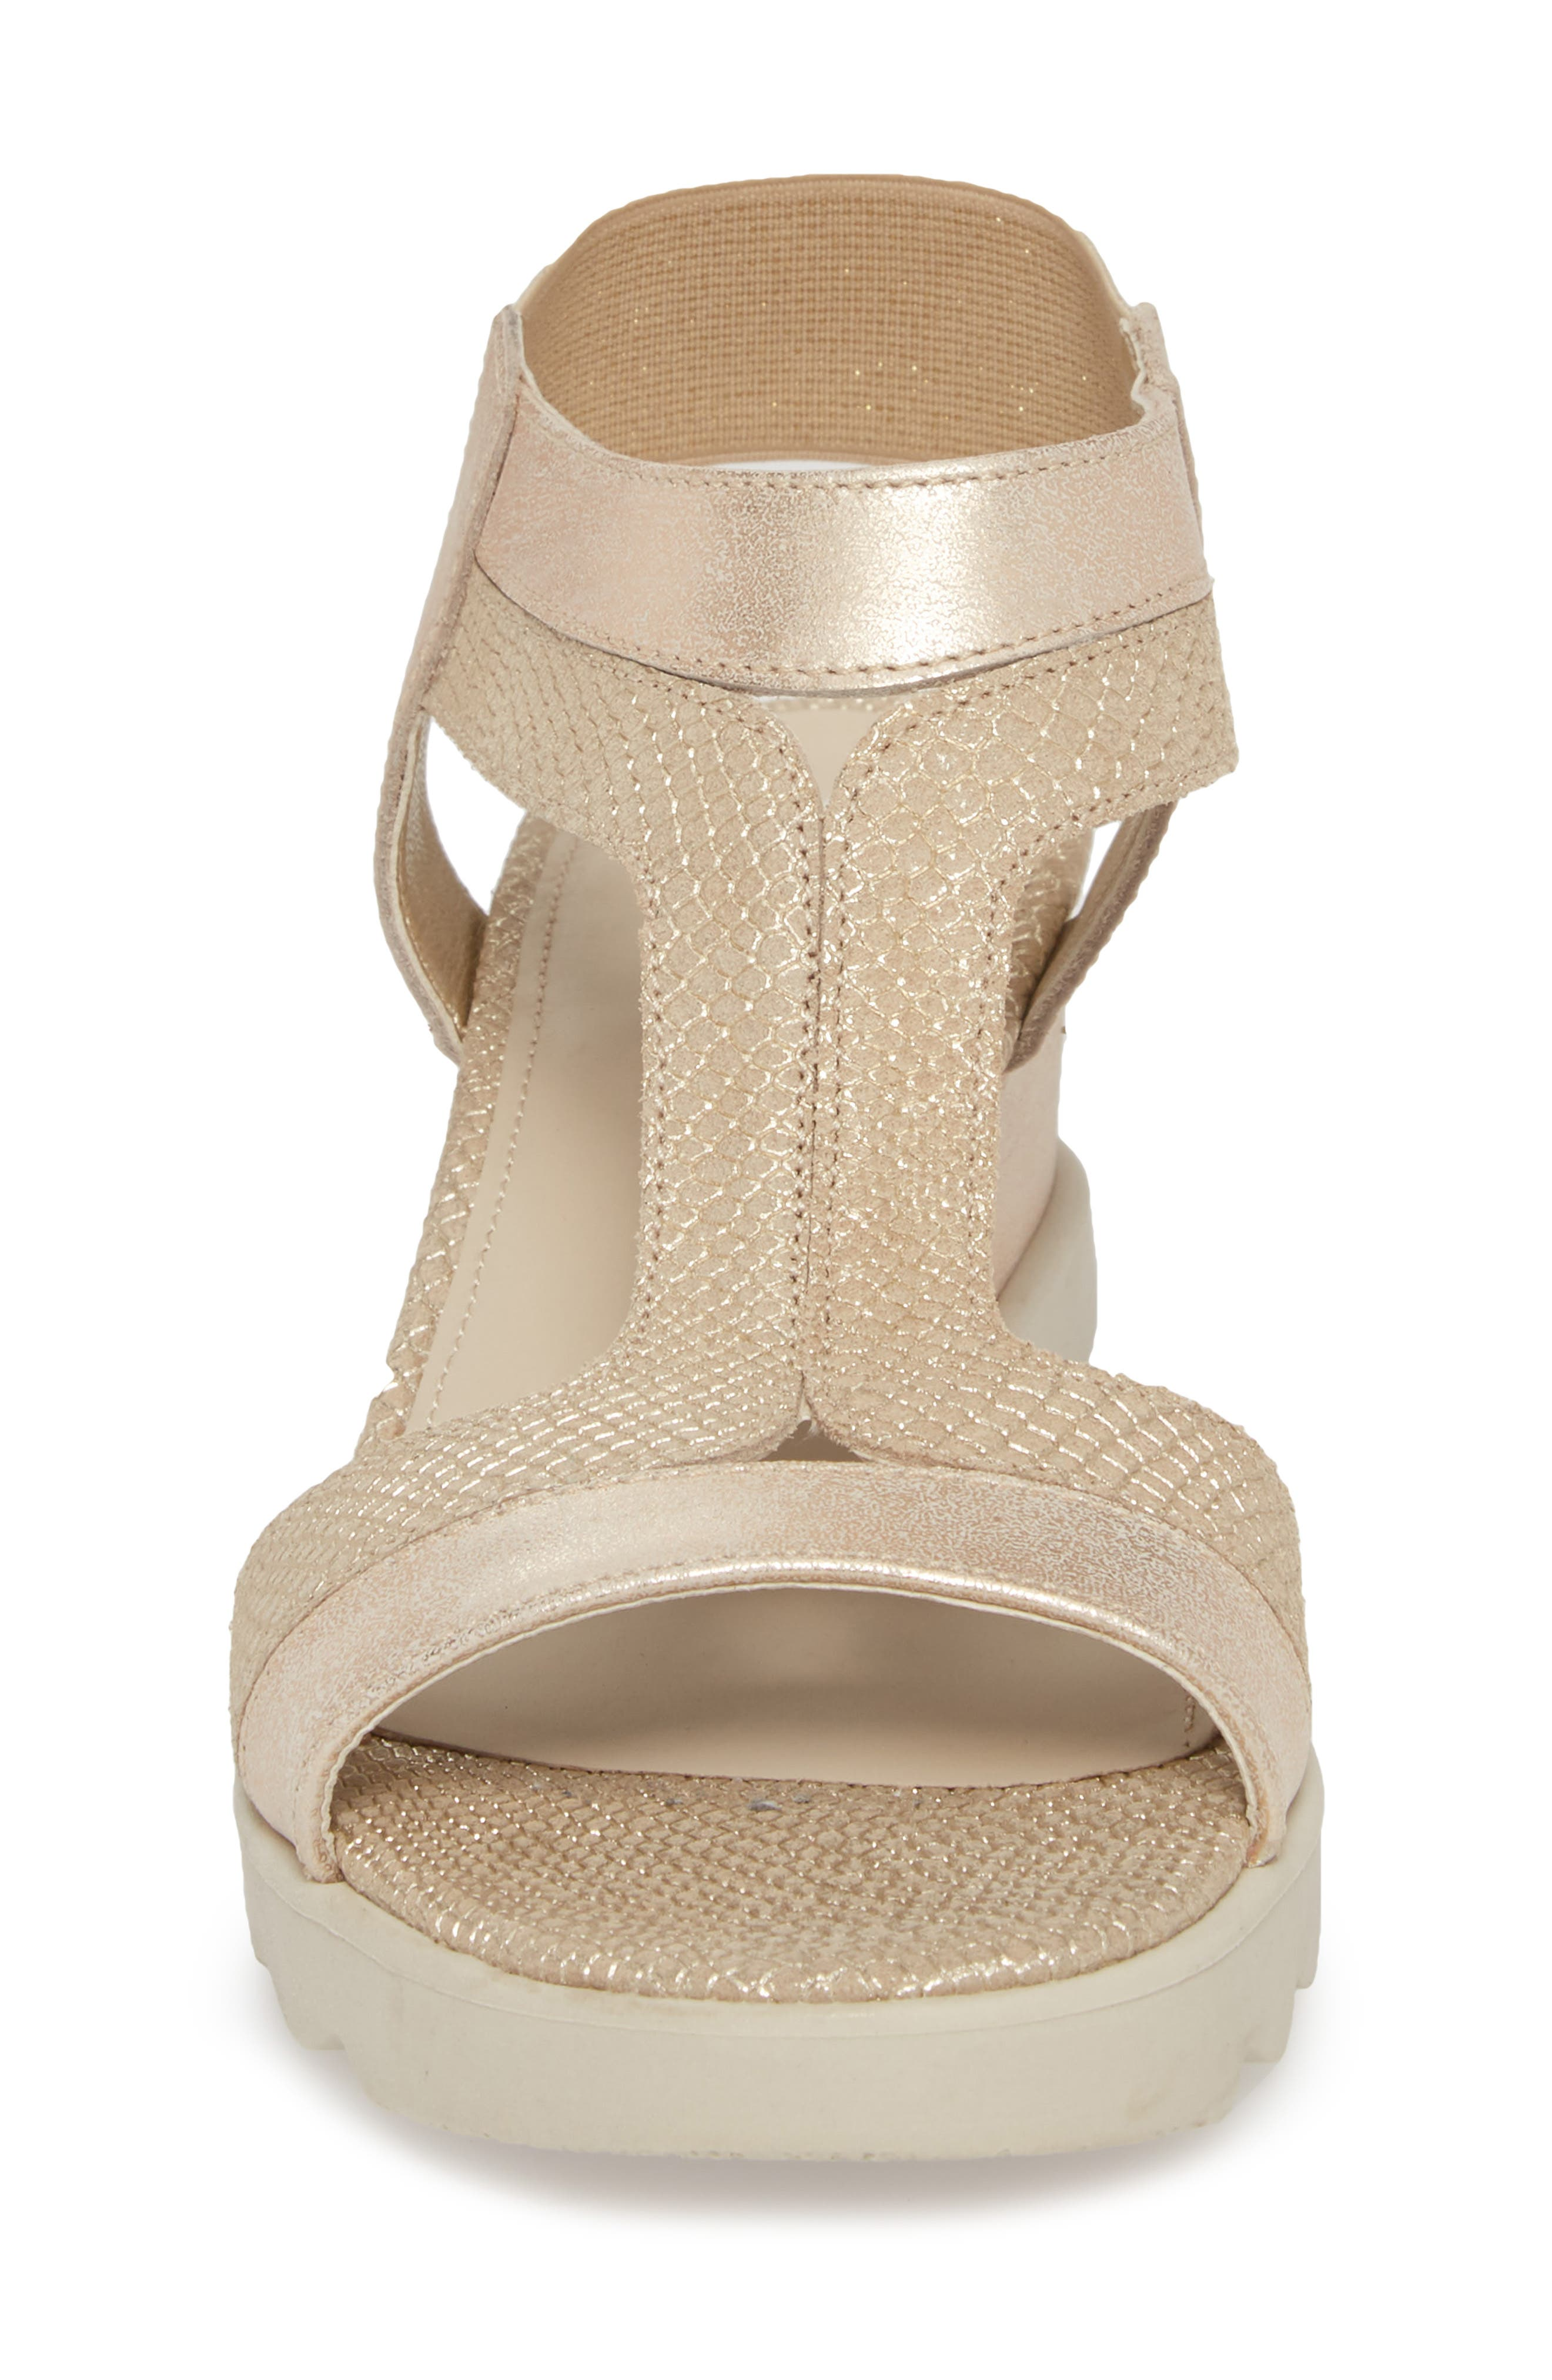 Give A Hoot Wedge Sandal,                             Alternate thumbnail 4, color,                             Gold Leather